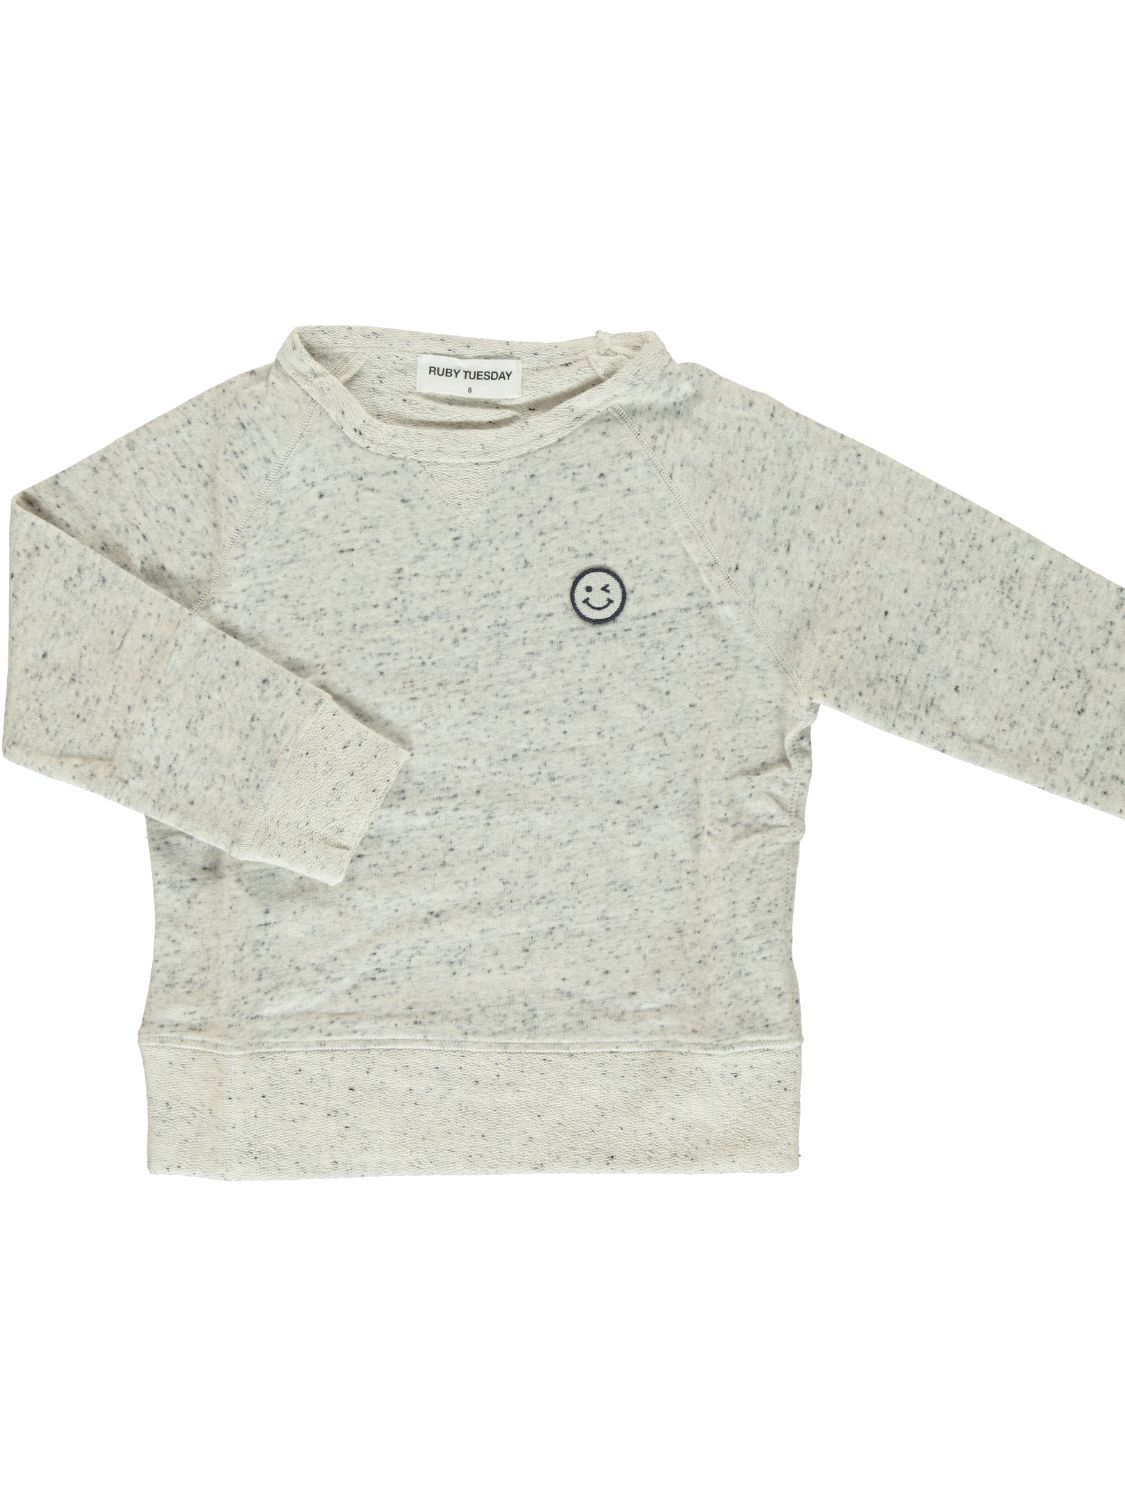 Ruby Tuesday Sweater